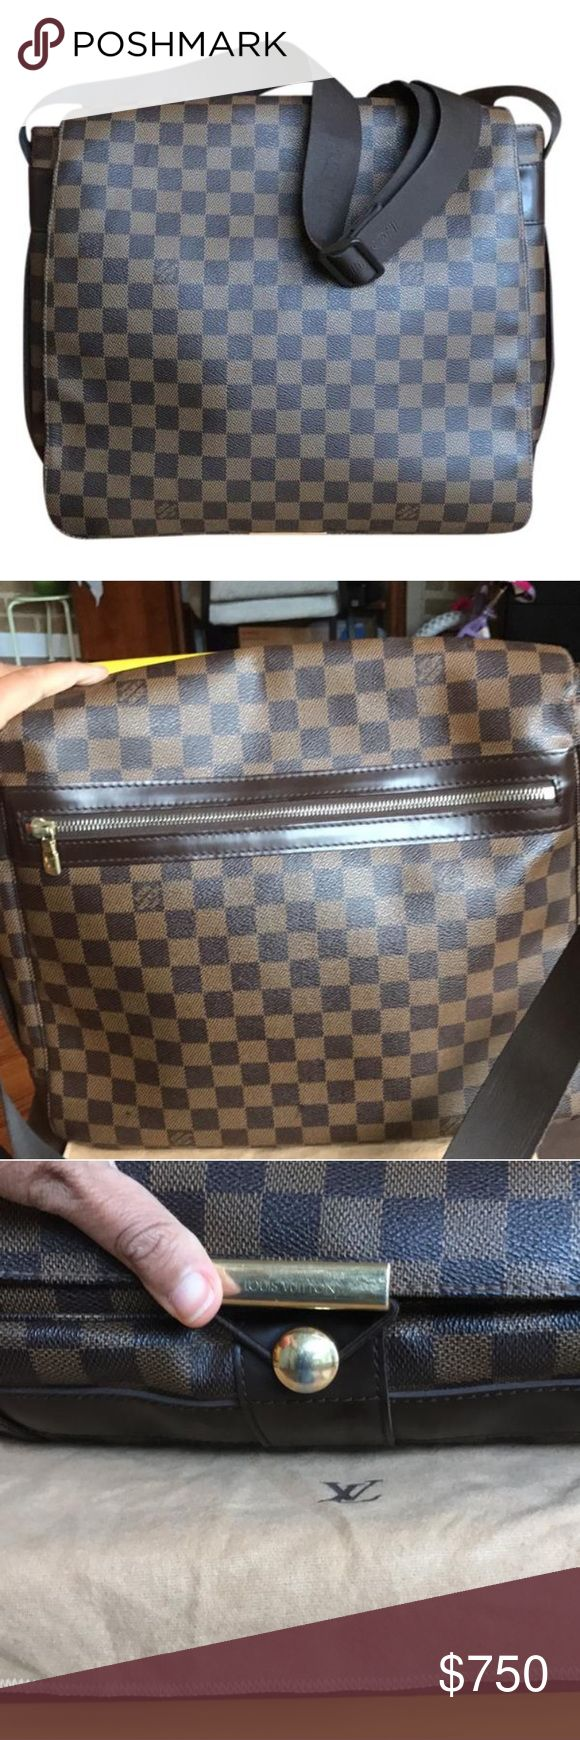 🖤BLACK FRIDAY🖤Louis Vuitton Bastille Laptop Bag In great preowned condition. Light wear. Authentic. Some scratches to the brown leather. Light scratches on corners. Inside canvas is in great shape with some light stains. Strap is adjustable. Super convenient so carry your laptop, and all your office or school everyday essentials.❌NO TRADES❌NO TRADES ❌  No box. No dustbag Louis Vuitton Bags Backpacks